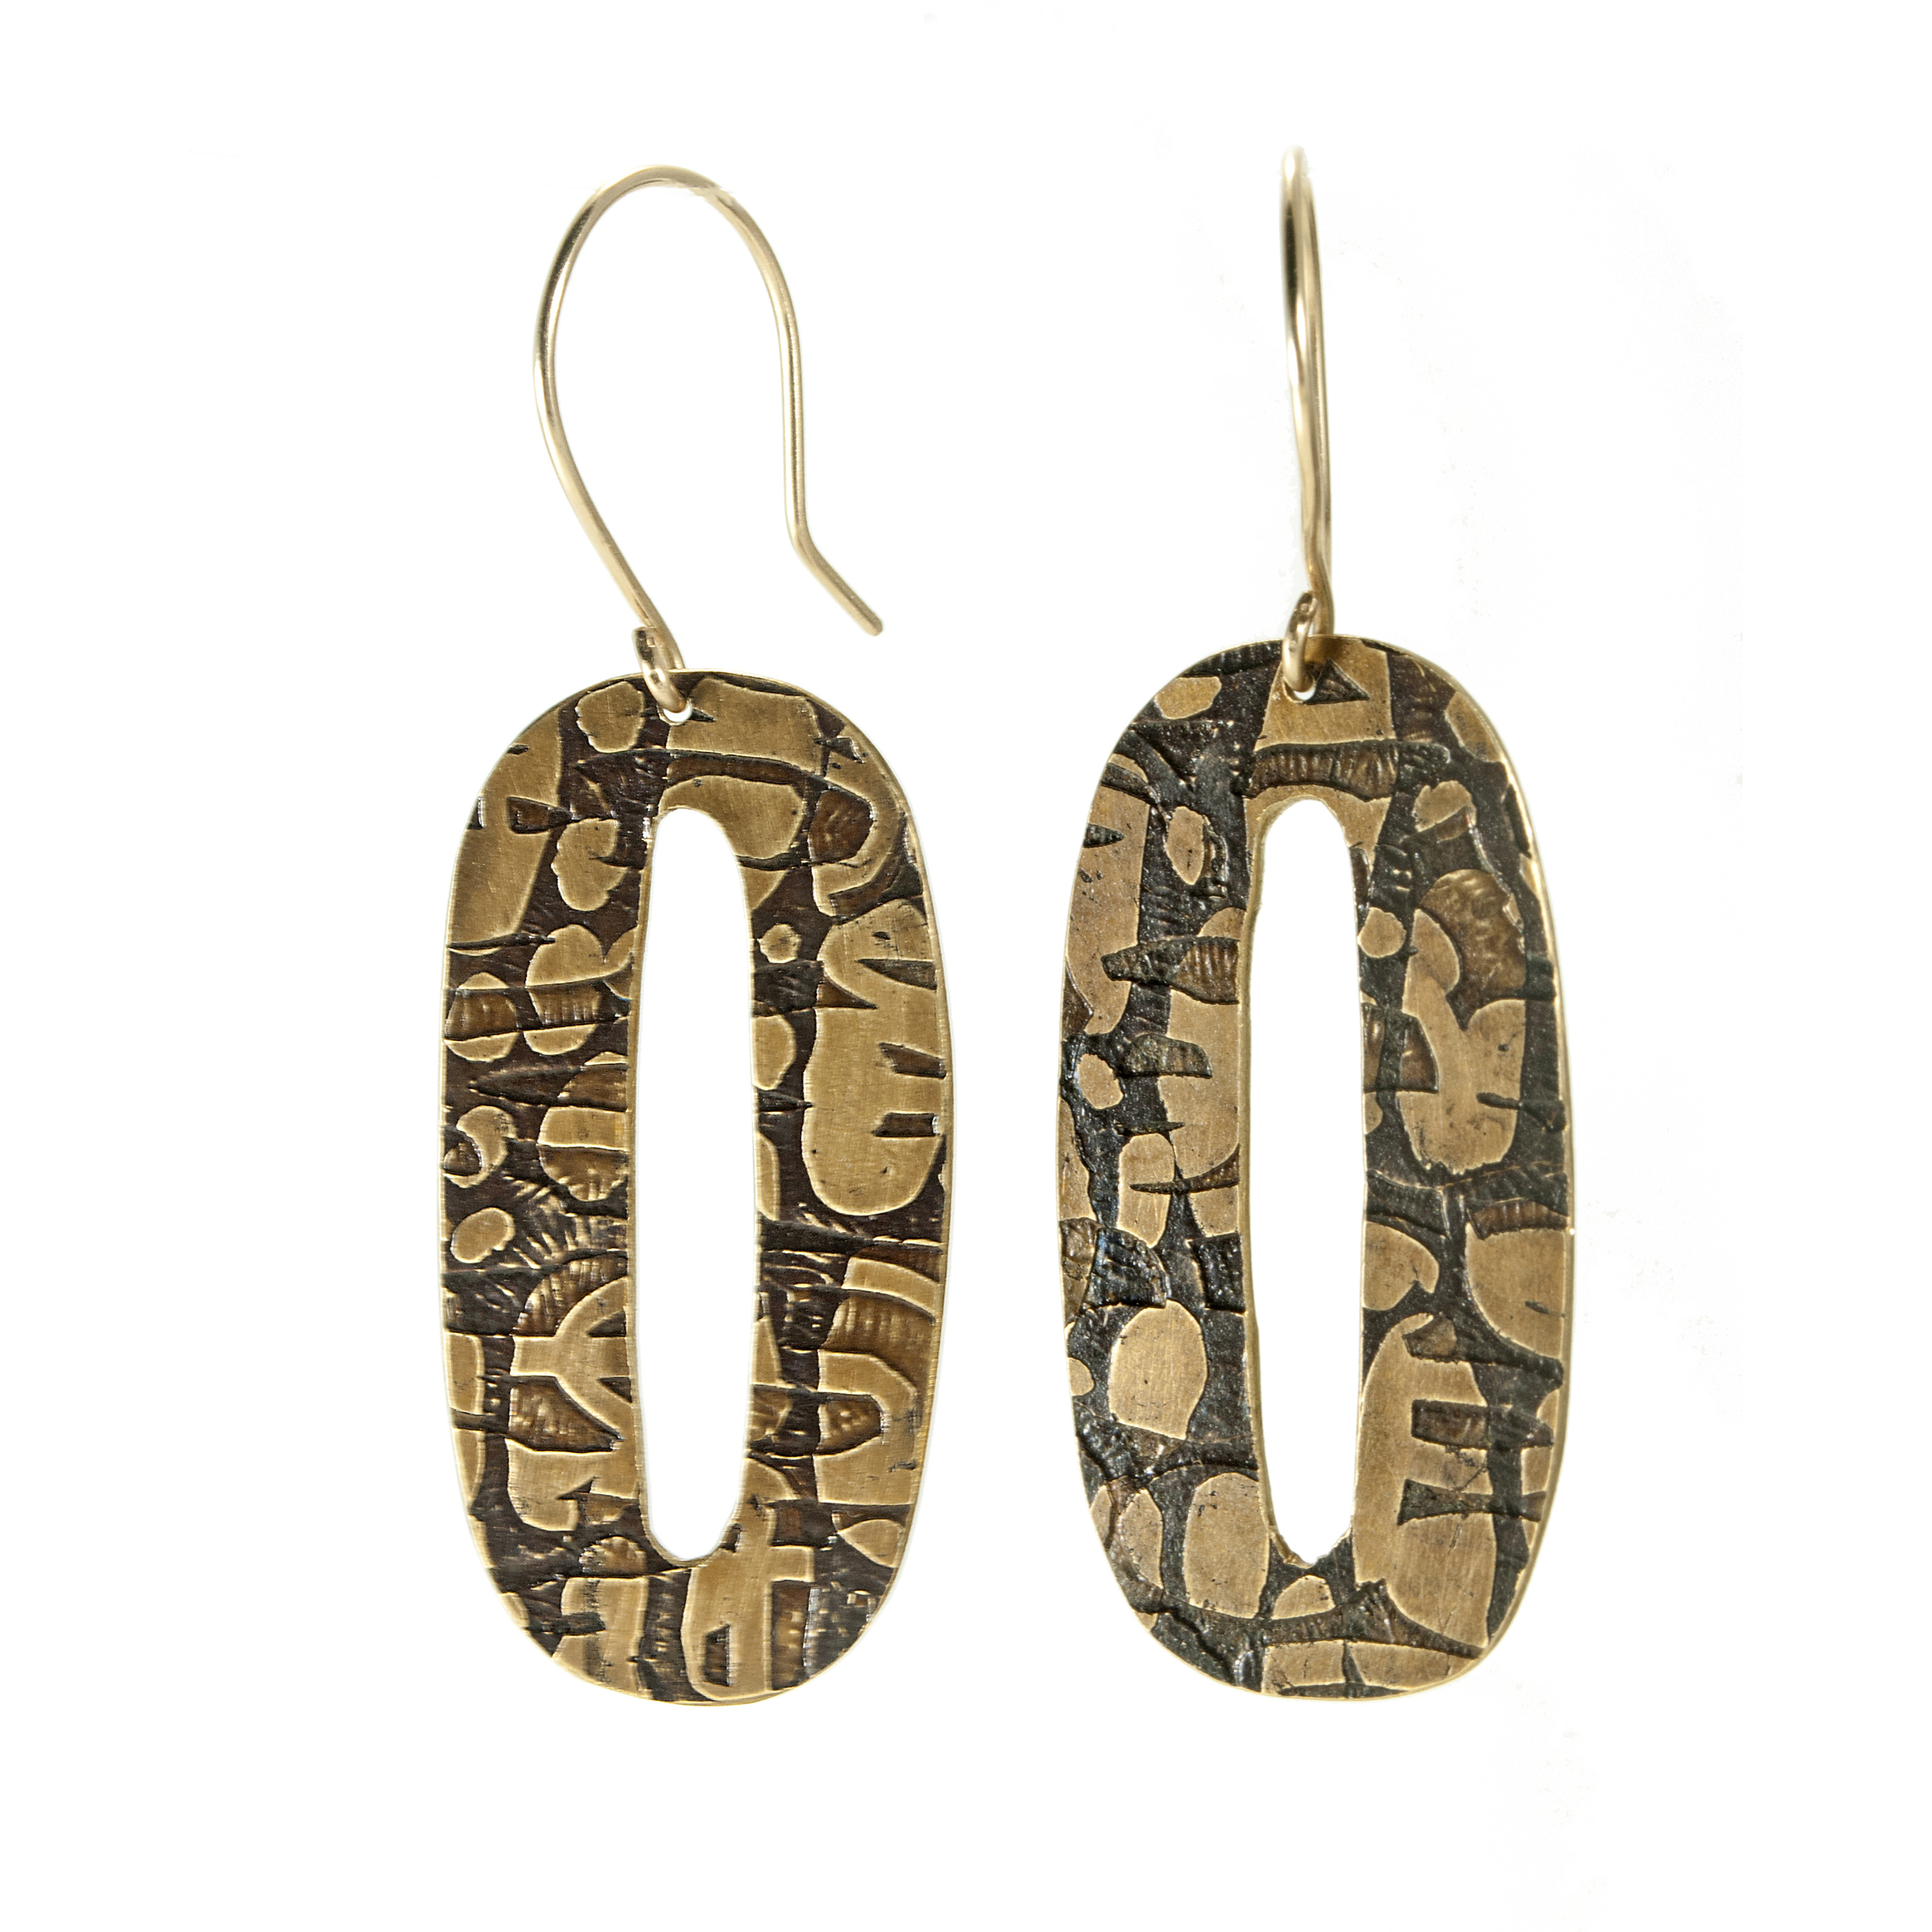 Etched Oh Earrings